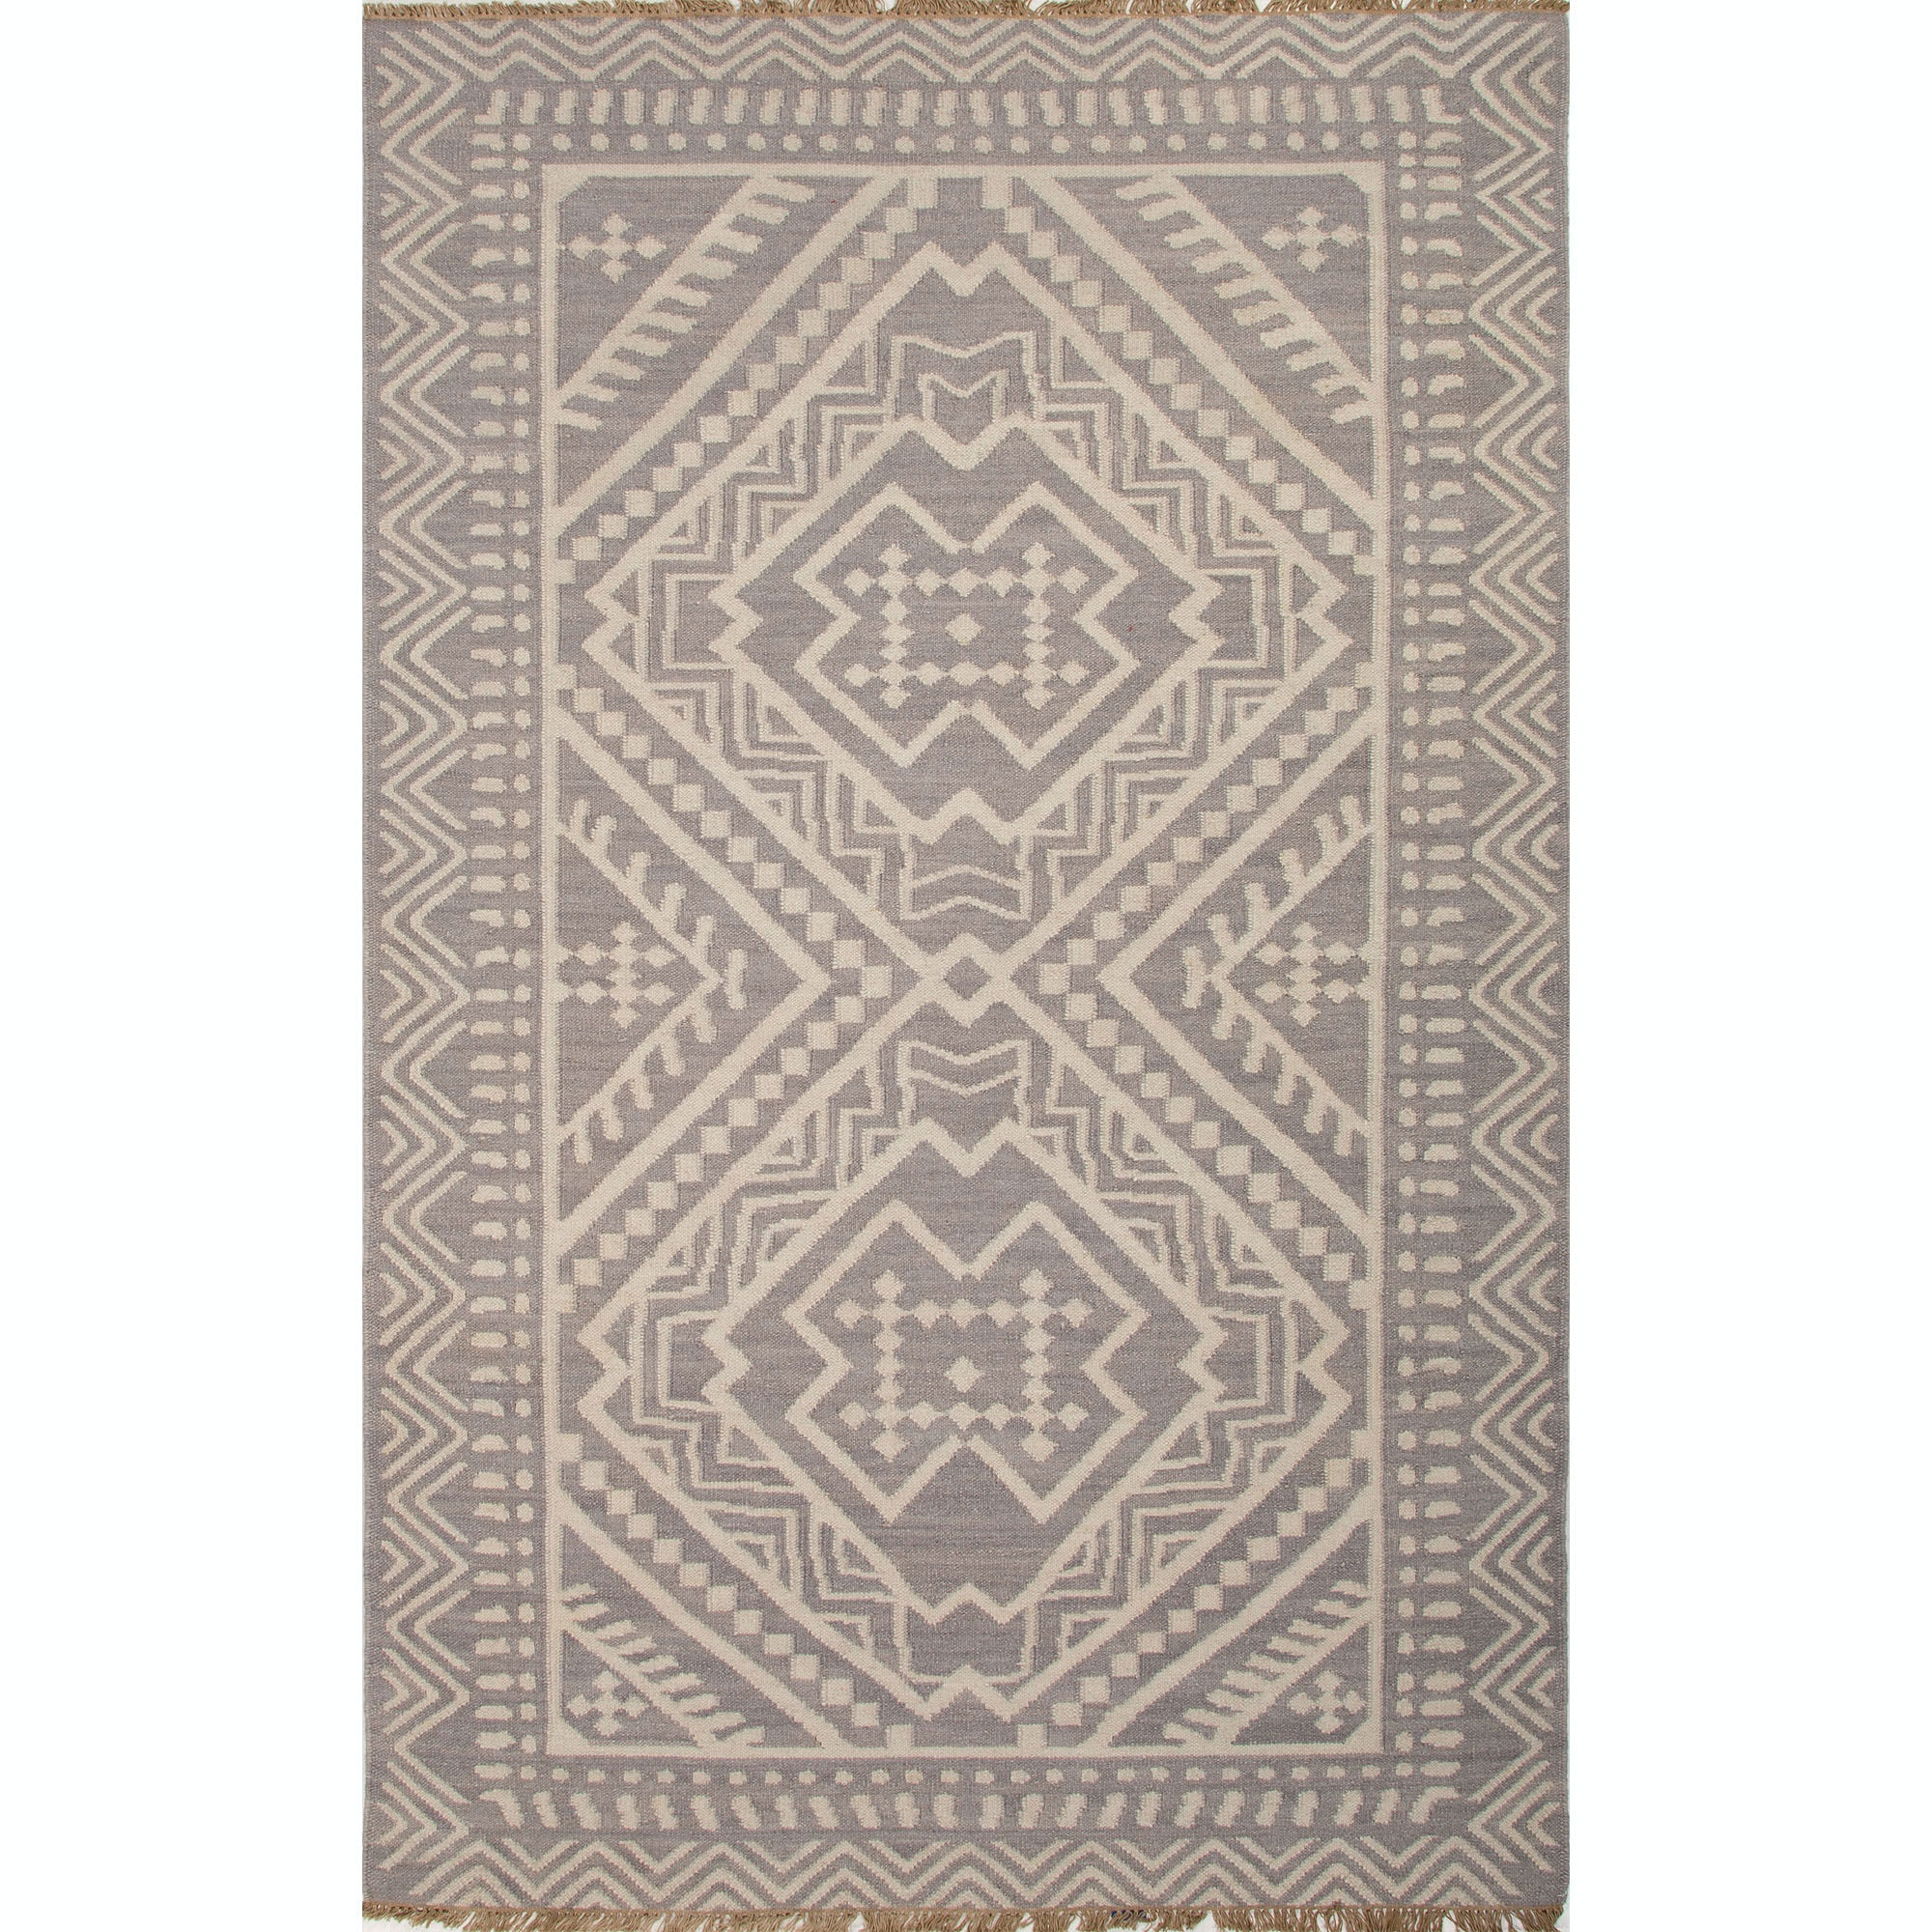 jaipur rugs flatweave tribal pattern wool redmulti area rug 8x10